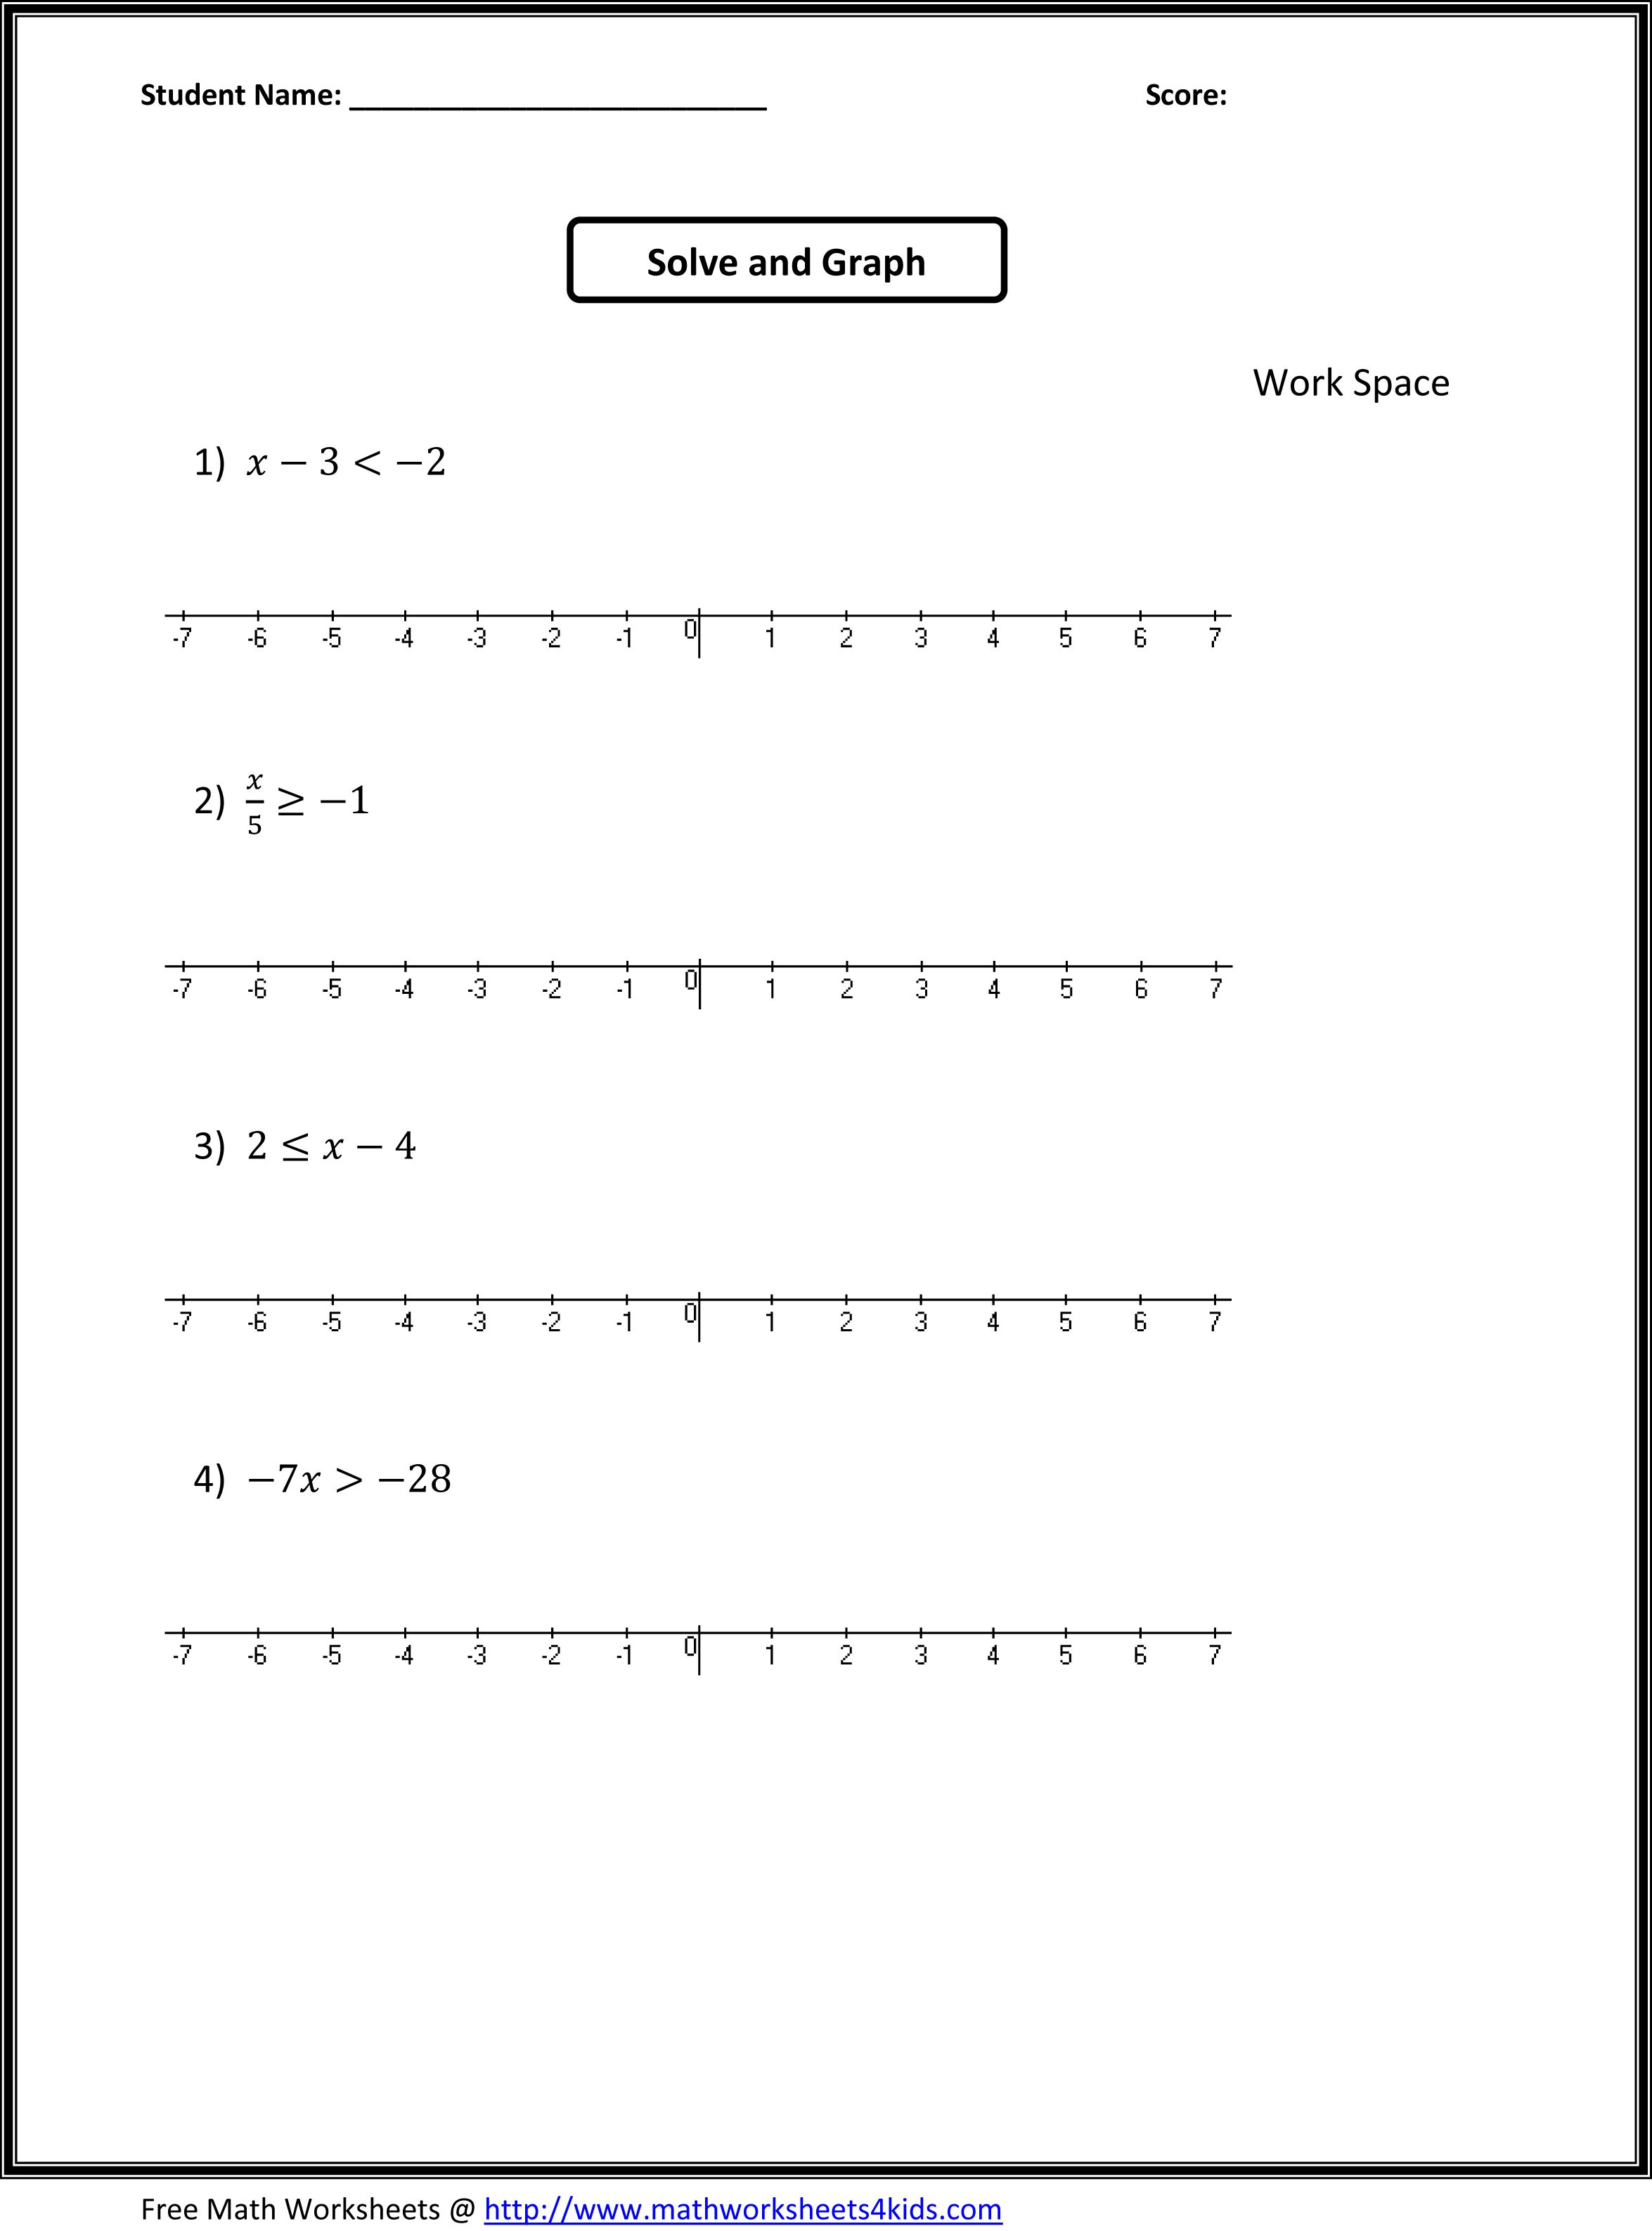 Printables 7th Grade Math Worksheets Printable Free worksheet free printable 7th grade math worksheets kerriwaller bloggakuten